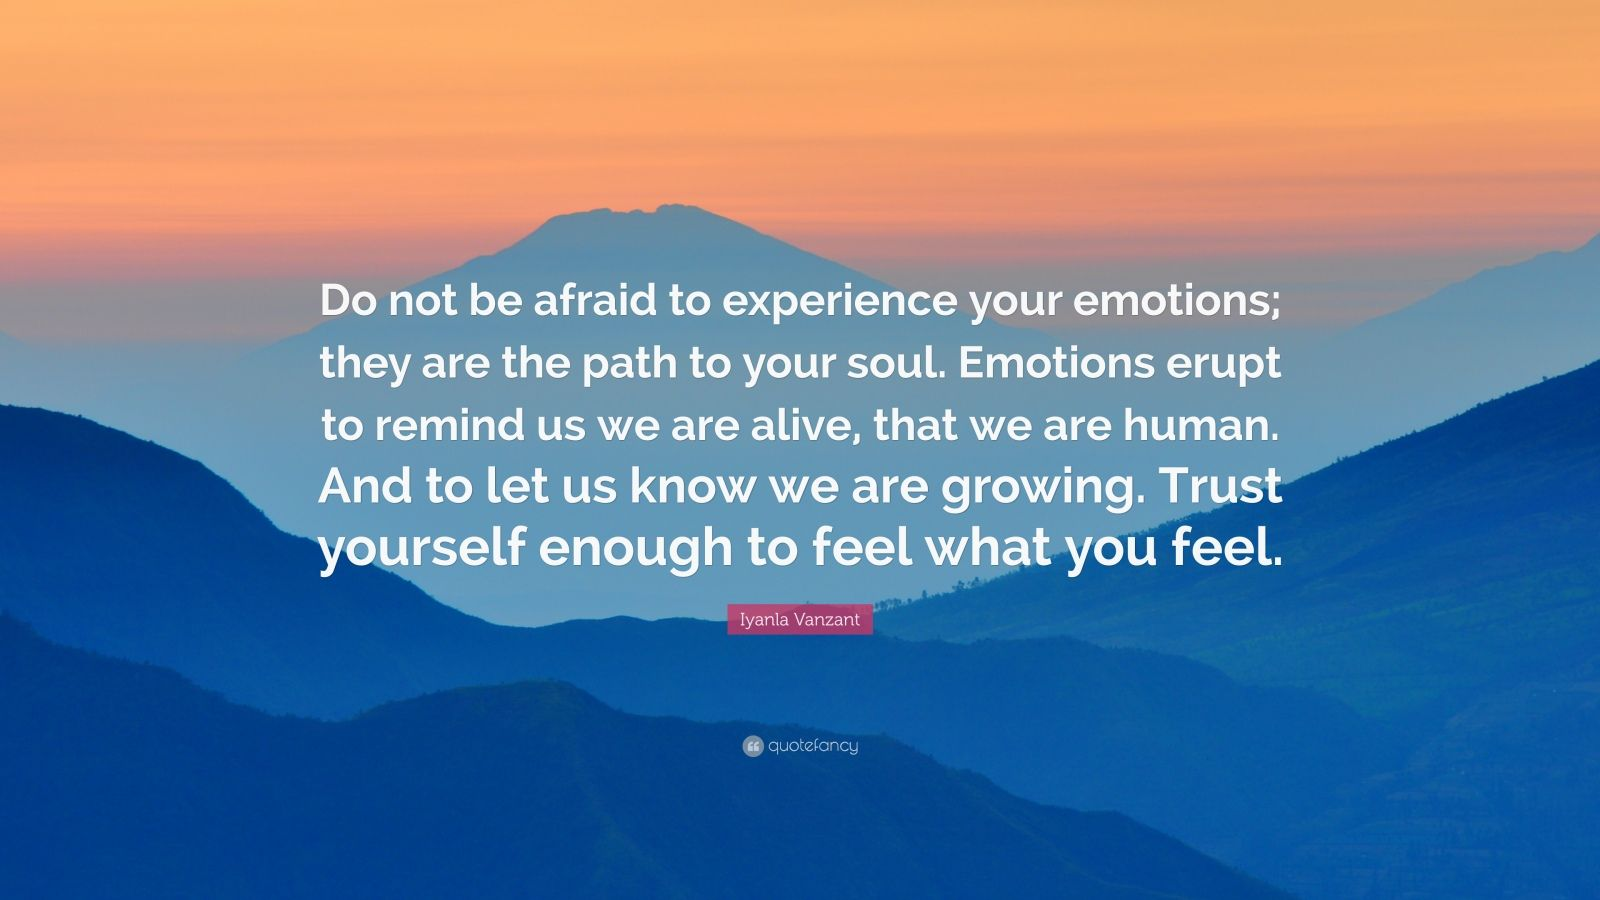 "Iyanla Vanzant Quote: ""Do not be afraid to experience your emotions; they are the path to your soul. Emotions erupt to remind us we are alive, that we are human. And to let us know we are growing. Trust yourself enough to feel what you feel."""